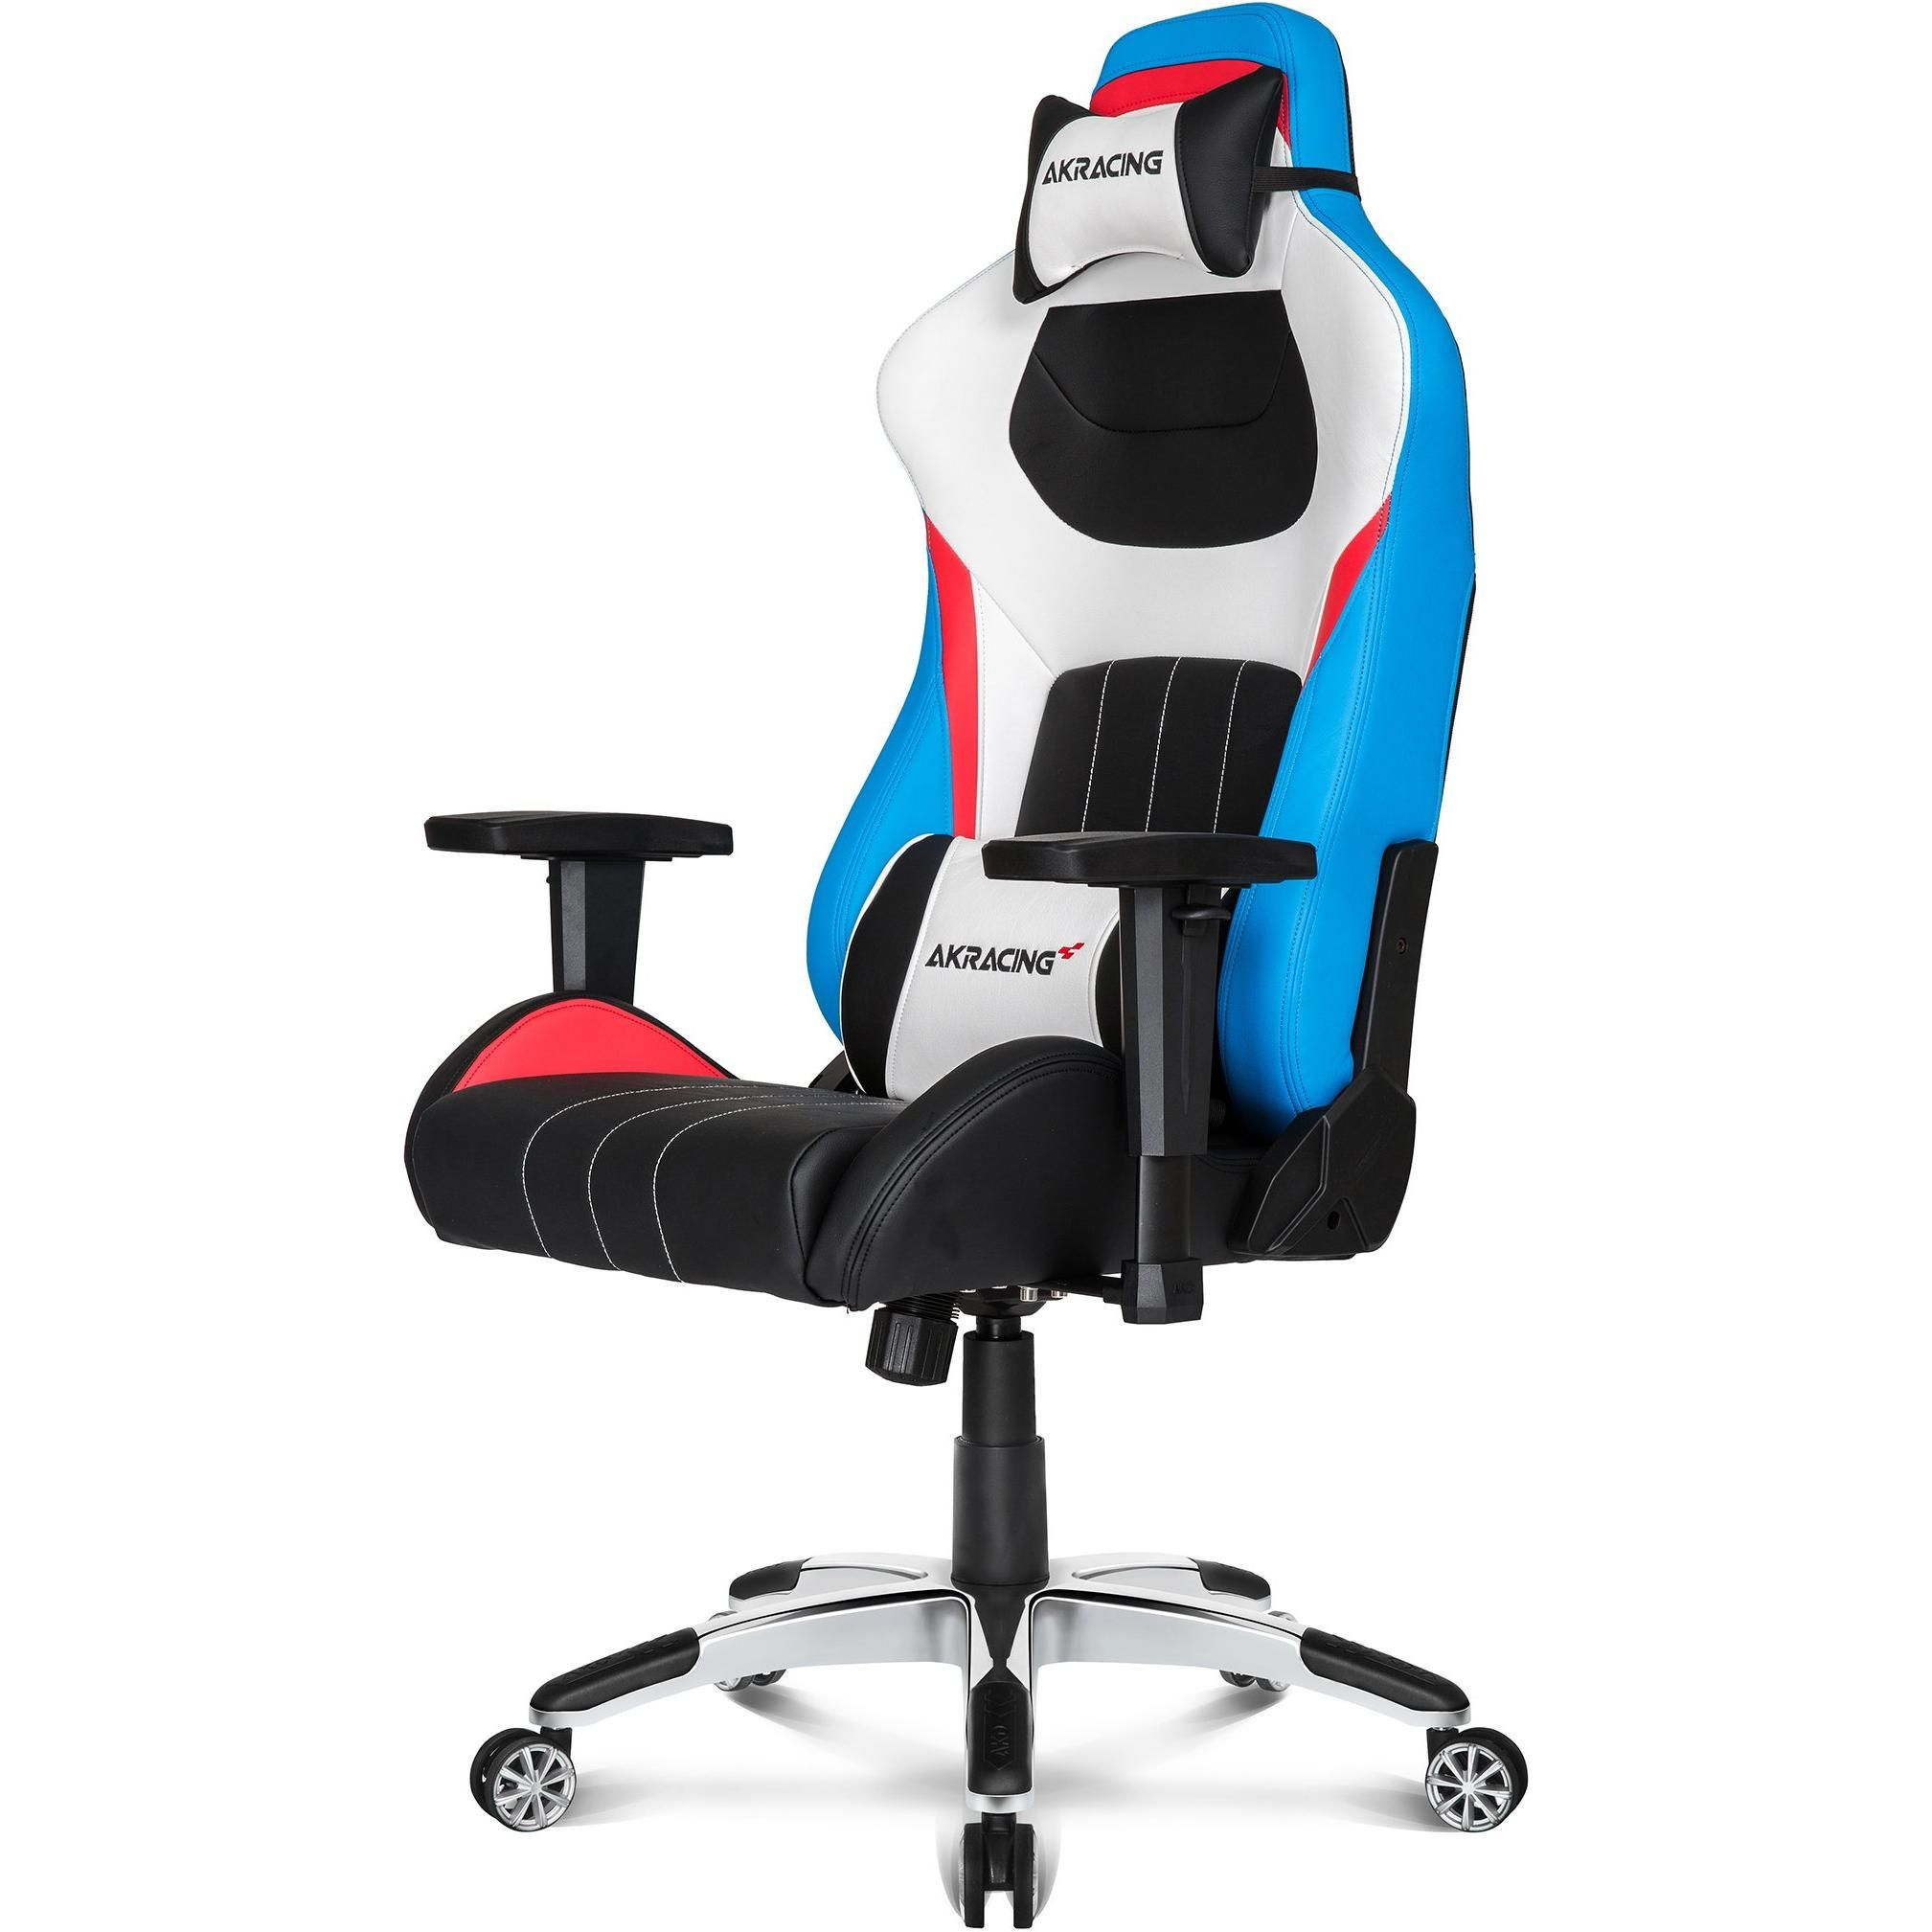 Tremendous Akracing Premium Red White Blue Gaming Chair Gaming Chairs Gmtry Best Dining Table And Chair Ideas Images Gmtryco